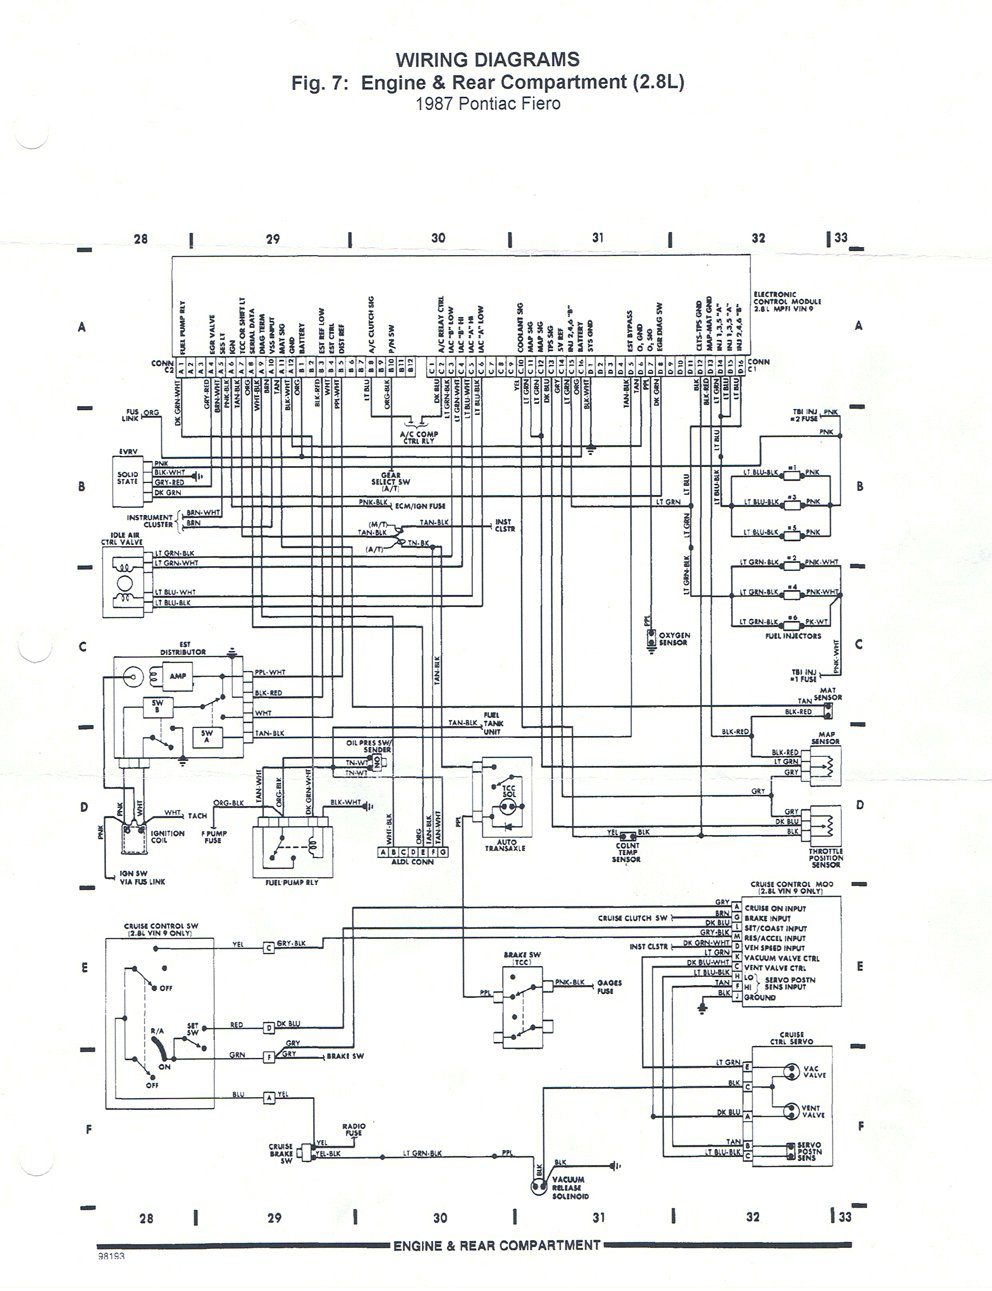 Penn Temperature Control Wiring Diagram 39 Images Stc1000 Controller Build Page 32 87fieroeng Wire 1 3 4 Swap Questions Pennocks Fiero Forum Relay At